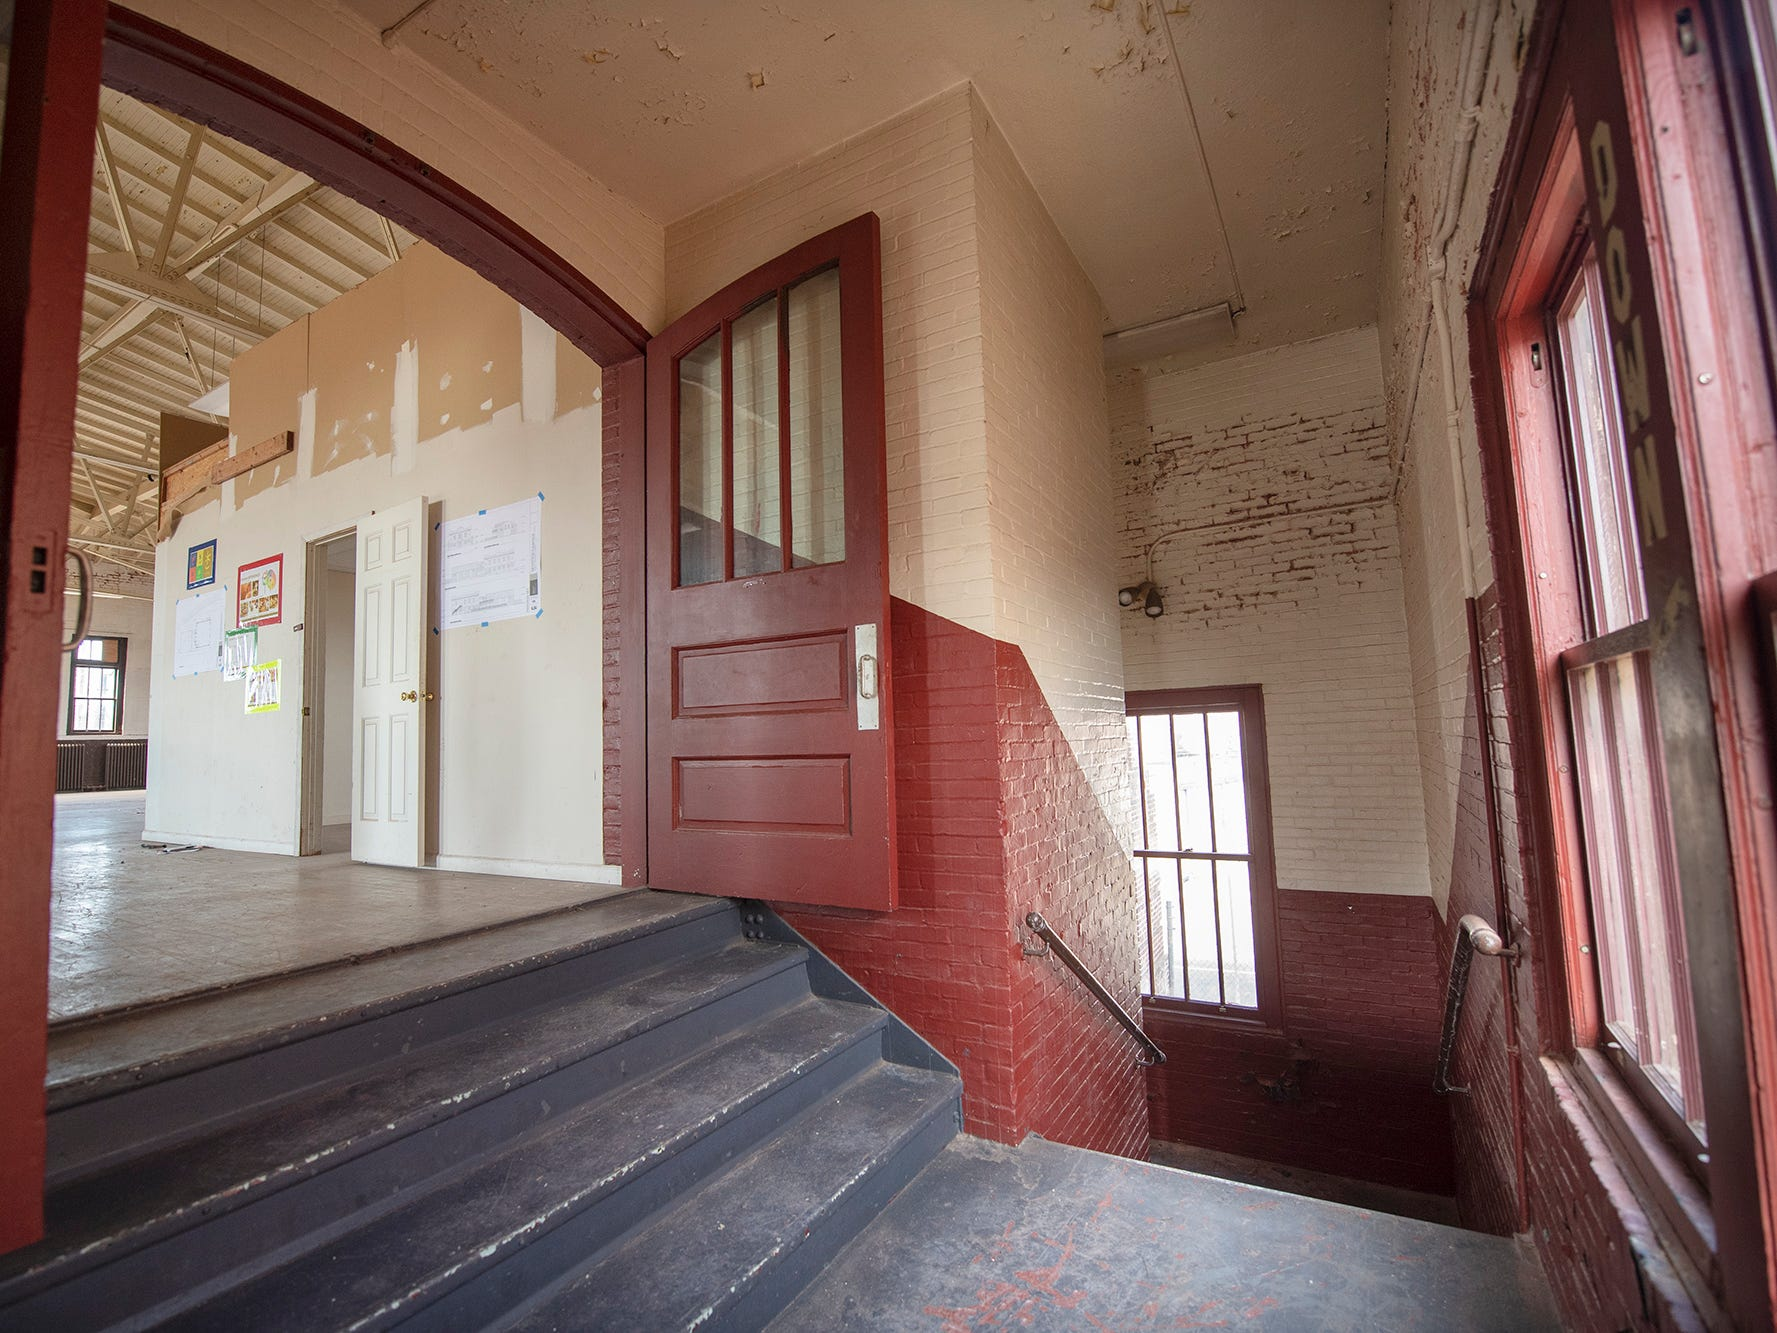 The character of the historic building can be seen in a stairwell to the second floor. The York Armory, a brick fortress built in 1913 once used by the Pa. National Guard, will soon be transformed into Keystone Kidspace, an educational experience for families. It's expected to open in 2020.